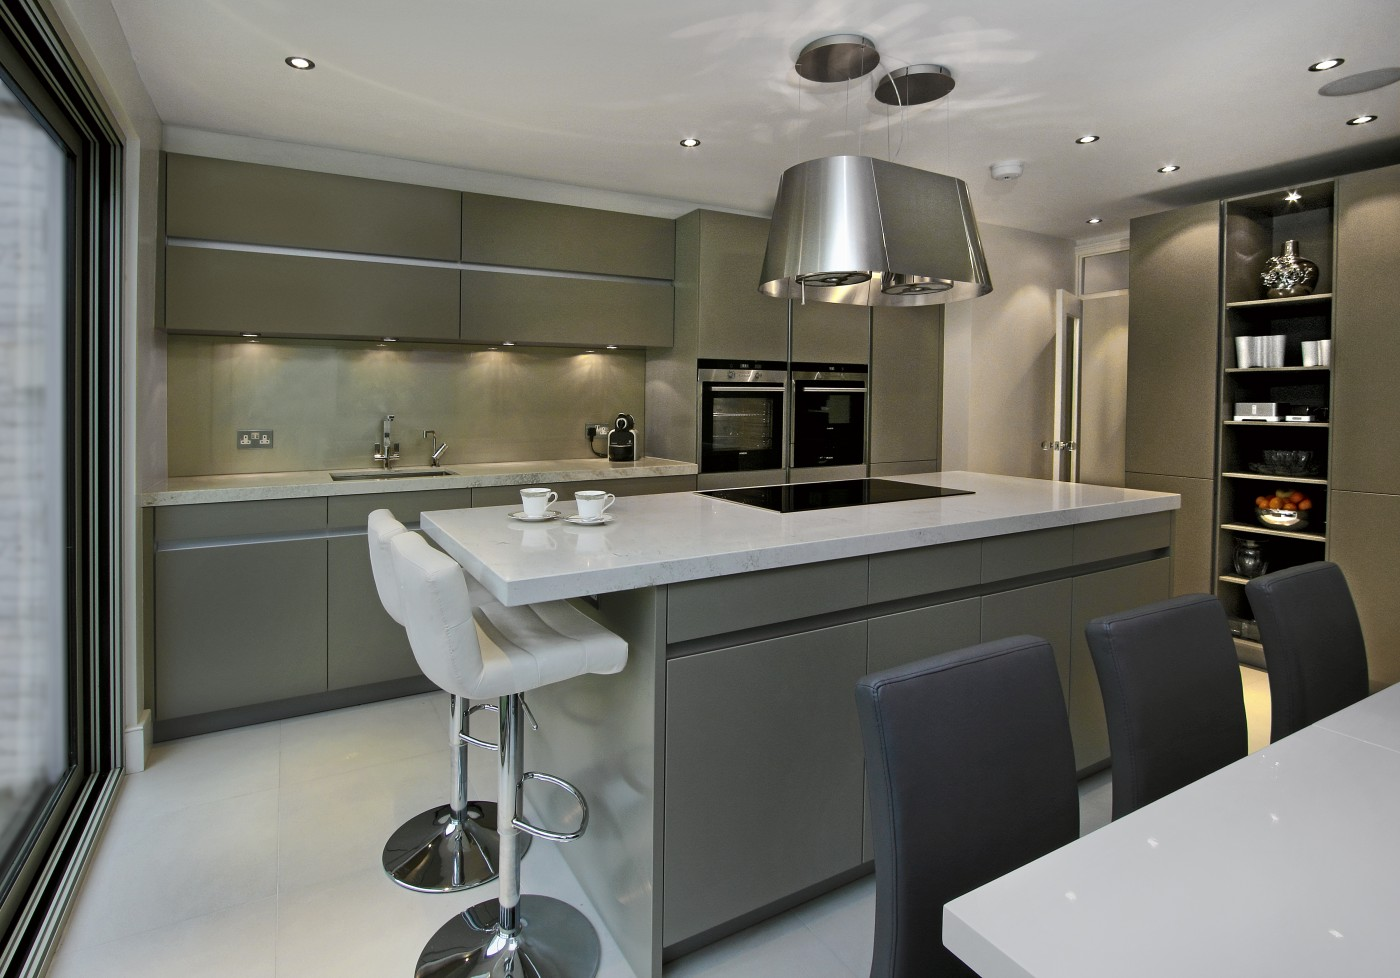 Leicht kitchens designer showroom fulham london elan kitchens - Images of kitchens ...